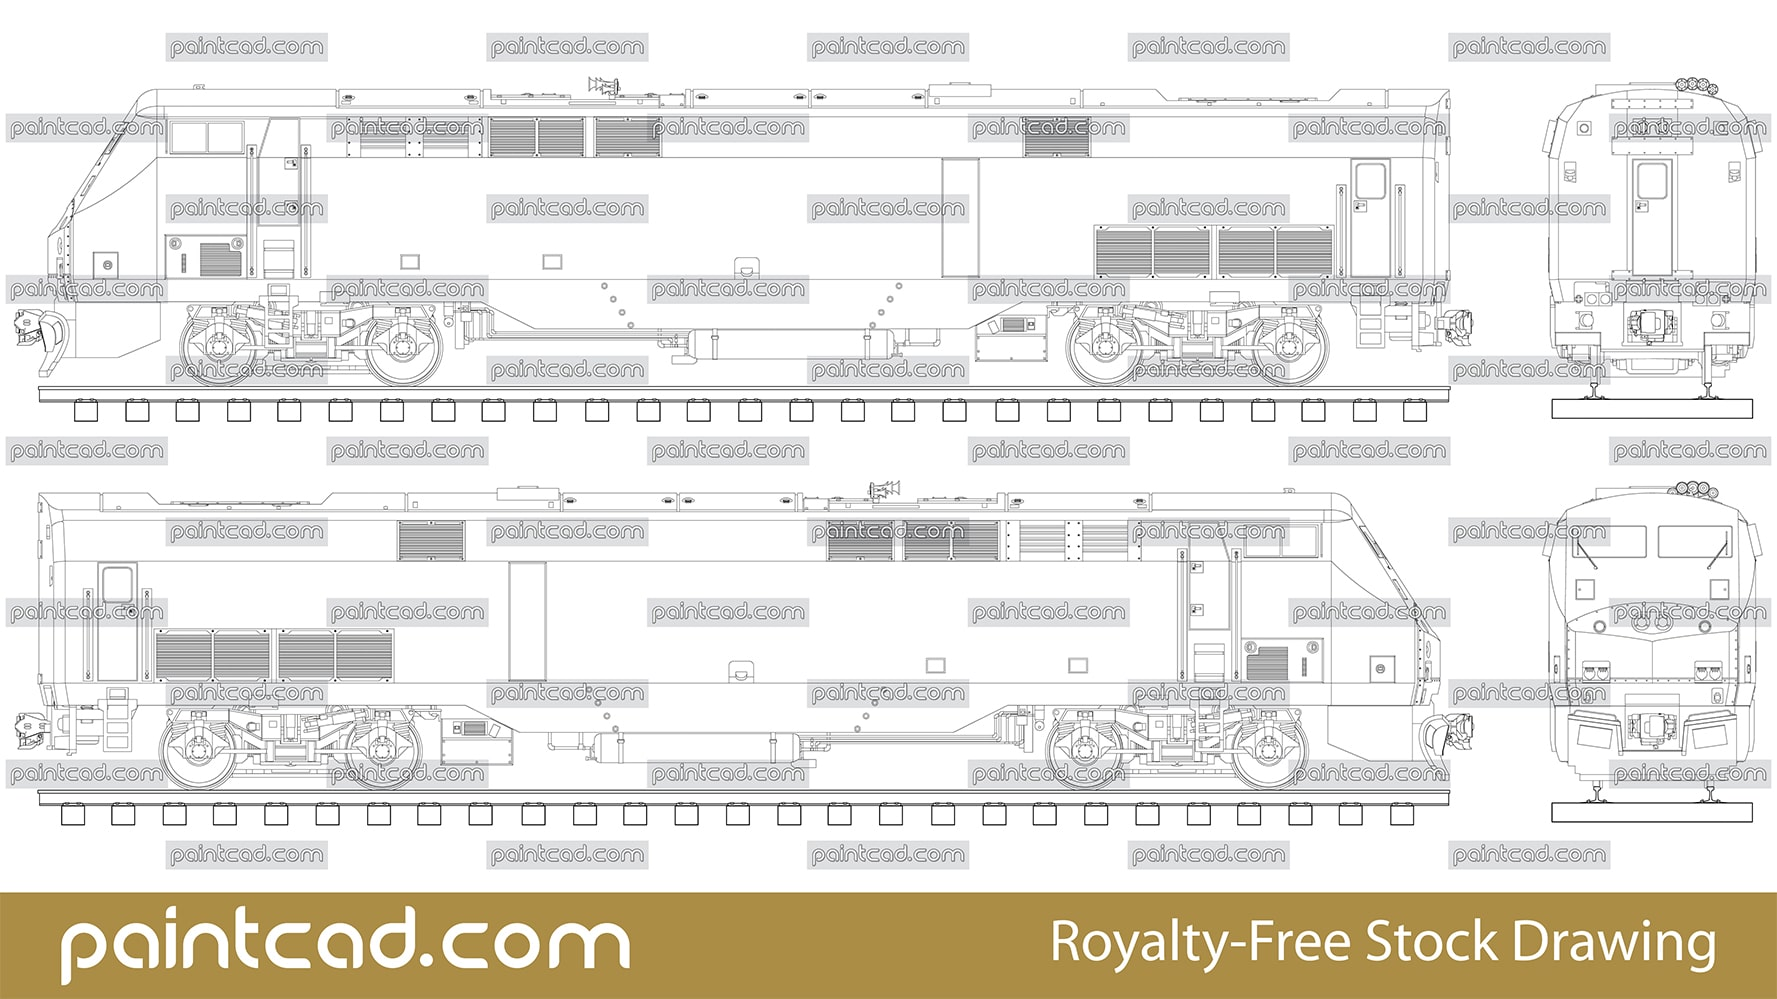 American diesel-electric locomotive P42DC by Amtrak train - vector illustration